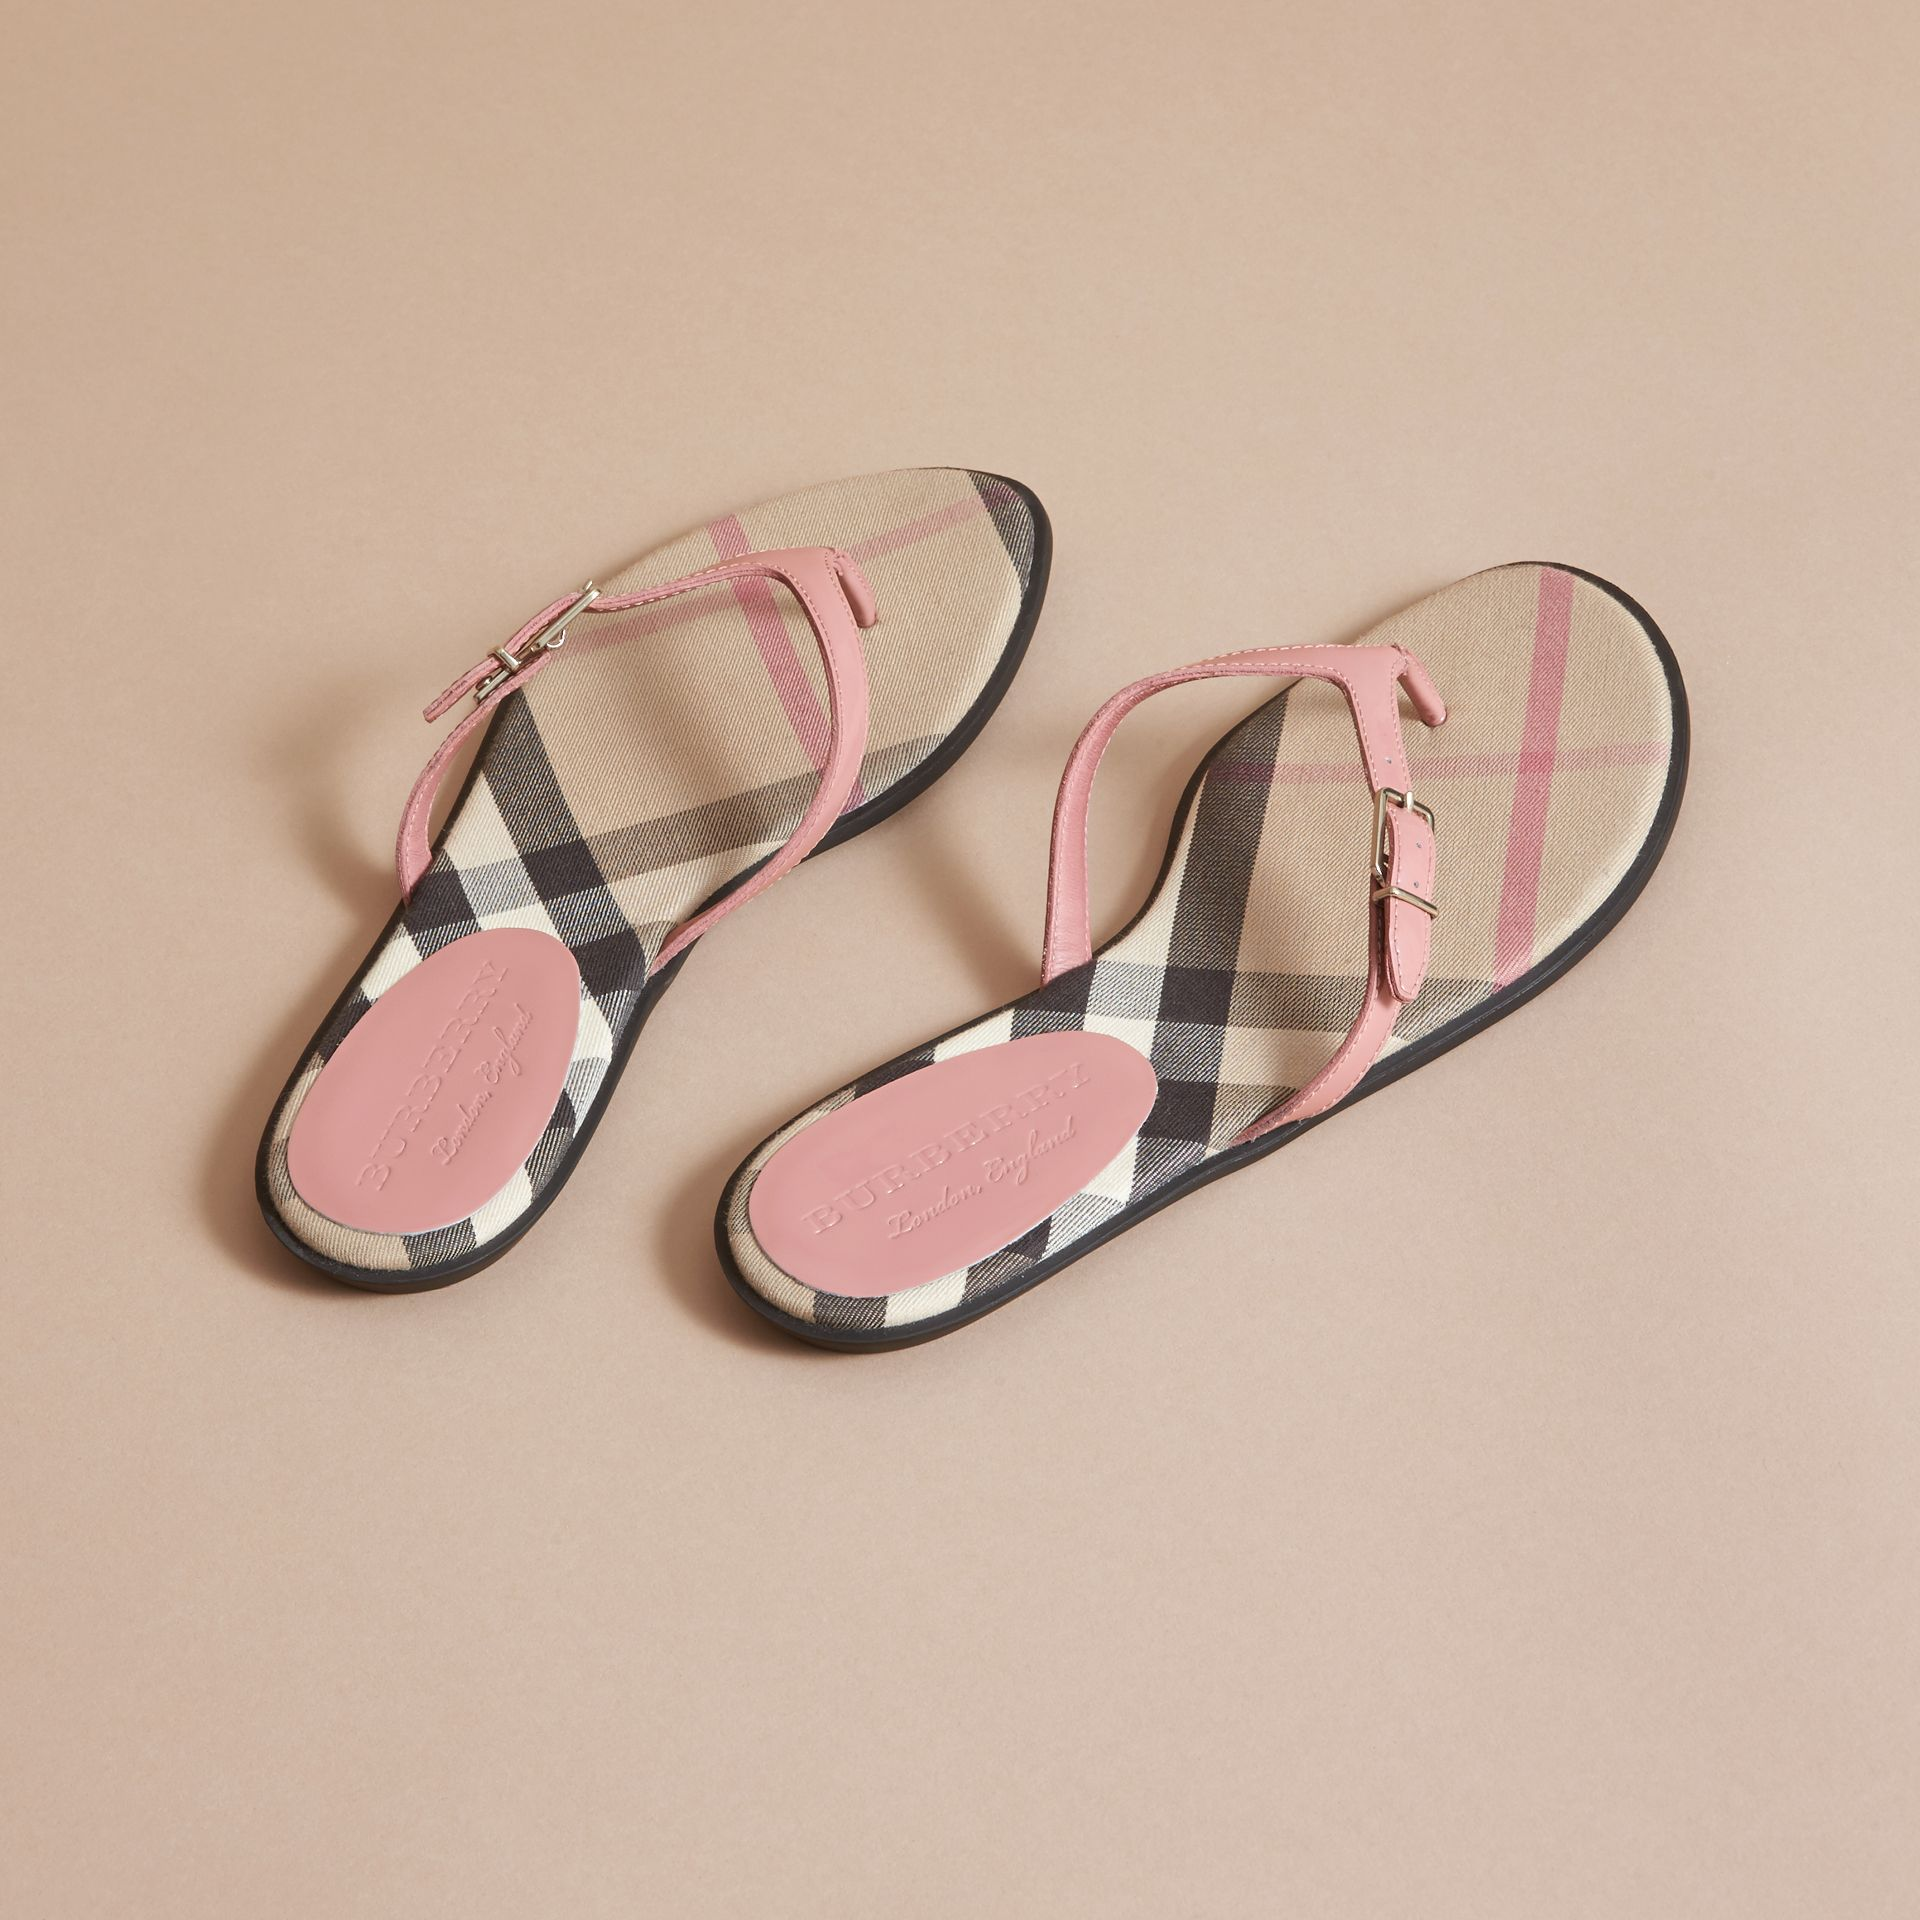 House Check and Patent Leather Sandals in Nude Pink - Women | Burberry - gallery image 4